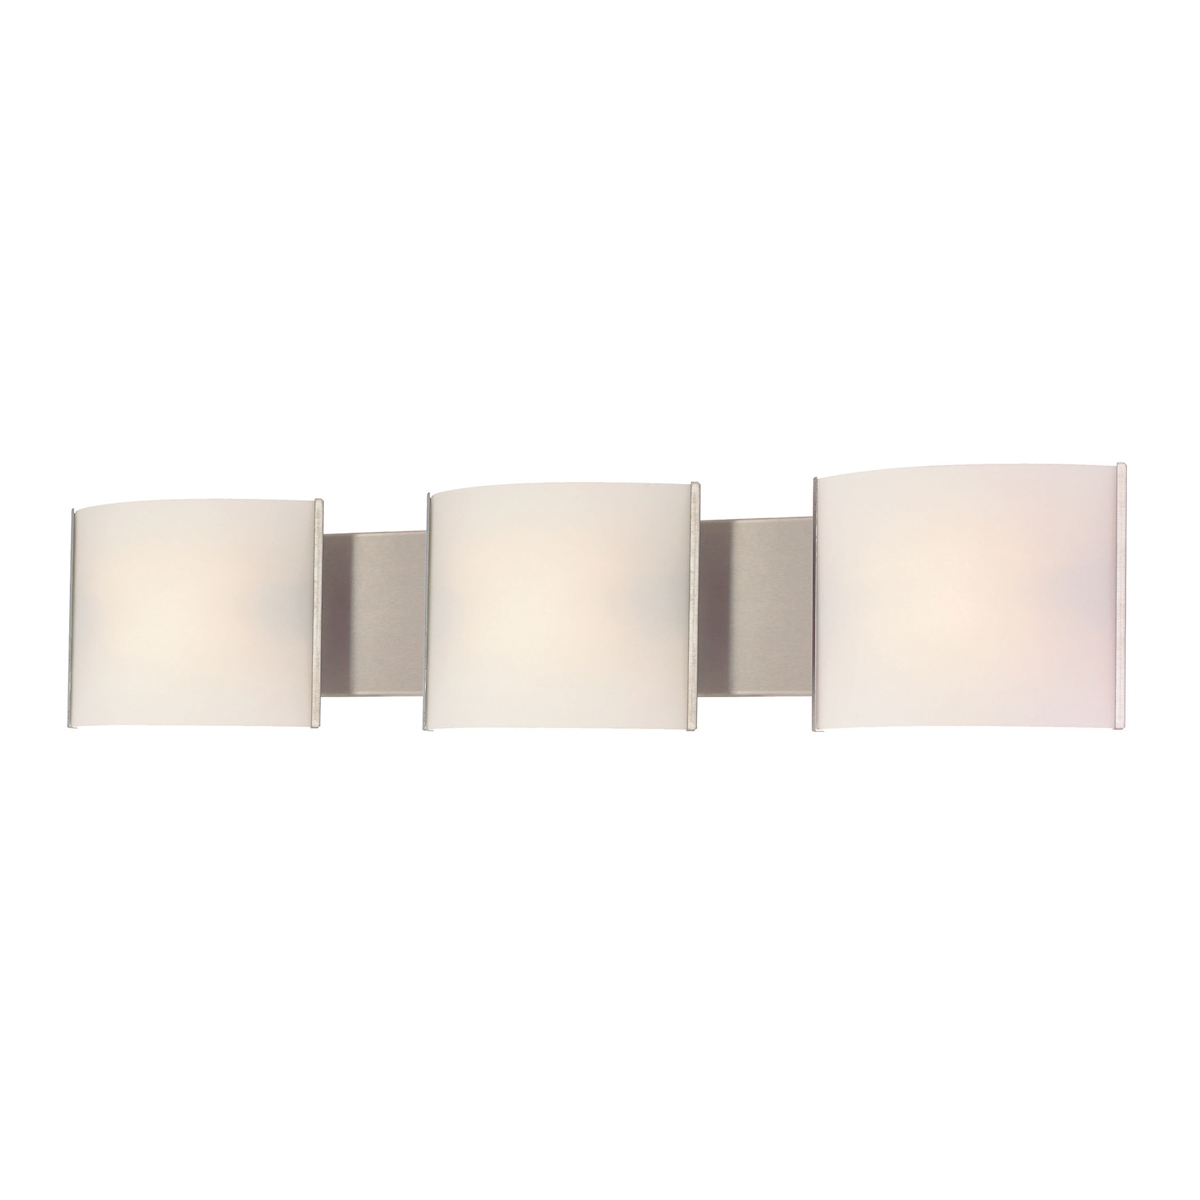 Pannelli Vanity - 3 Light with Lamps. White Opal Glass / SS Finish